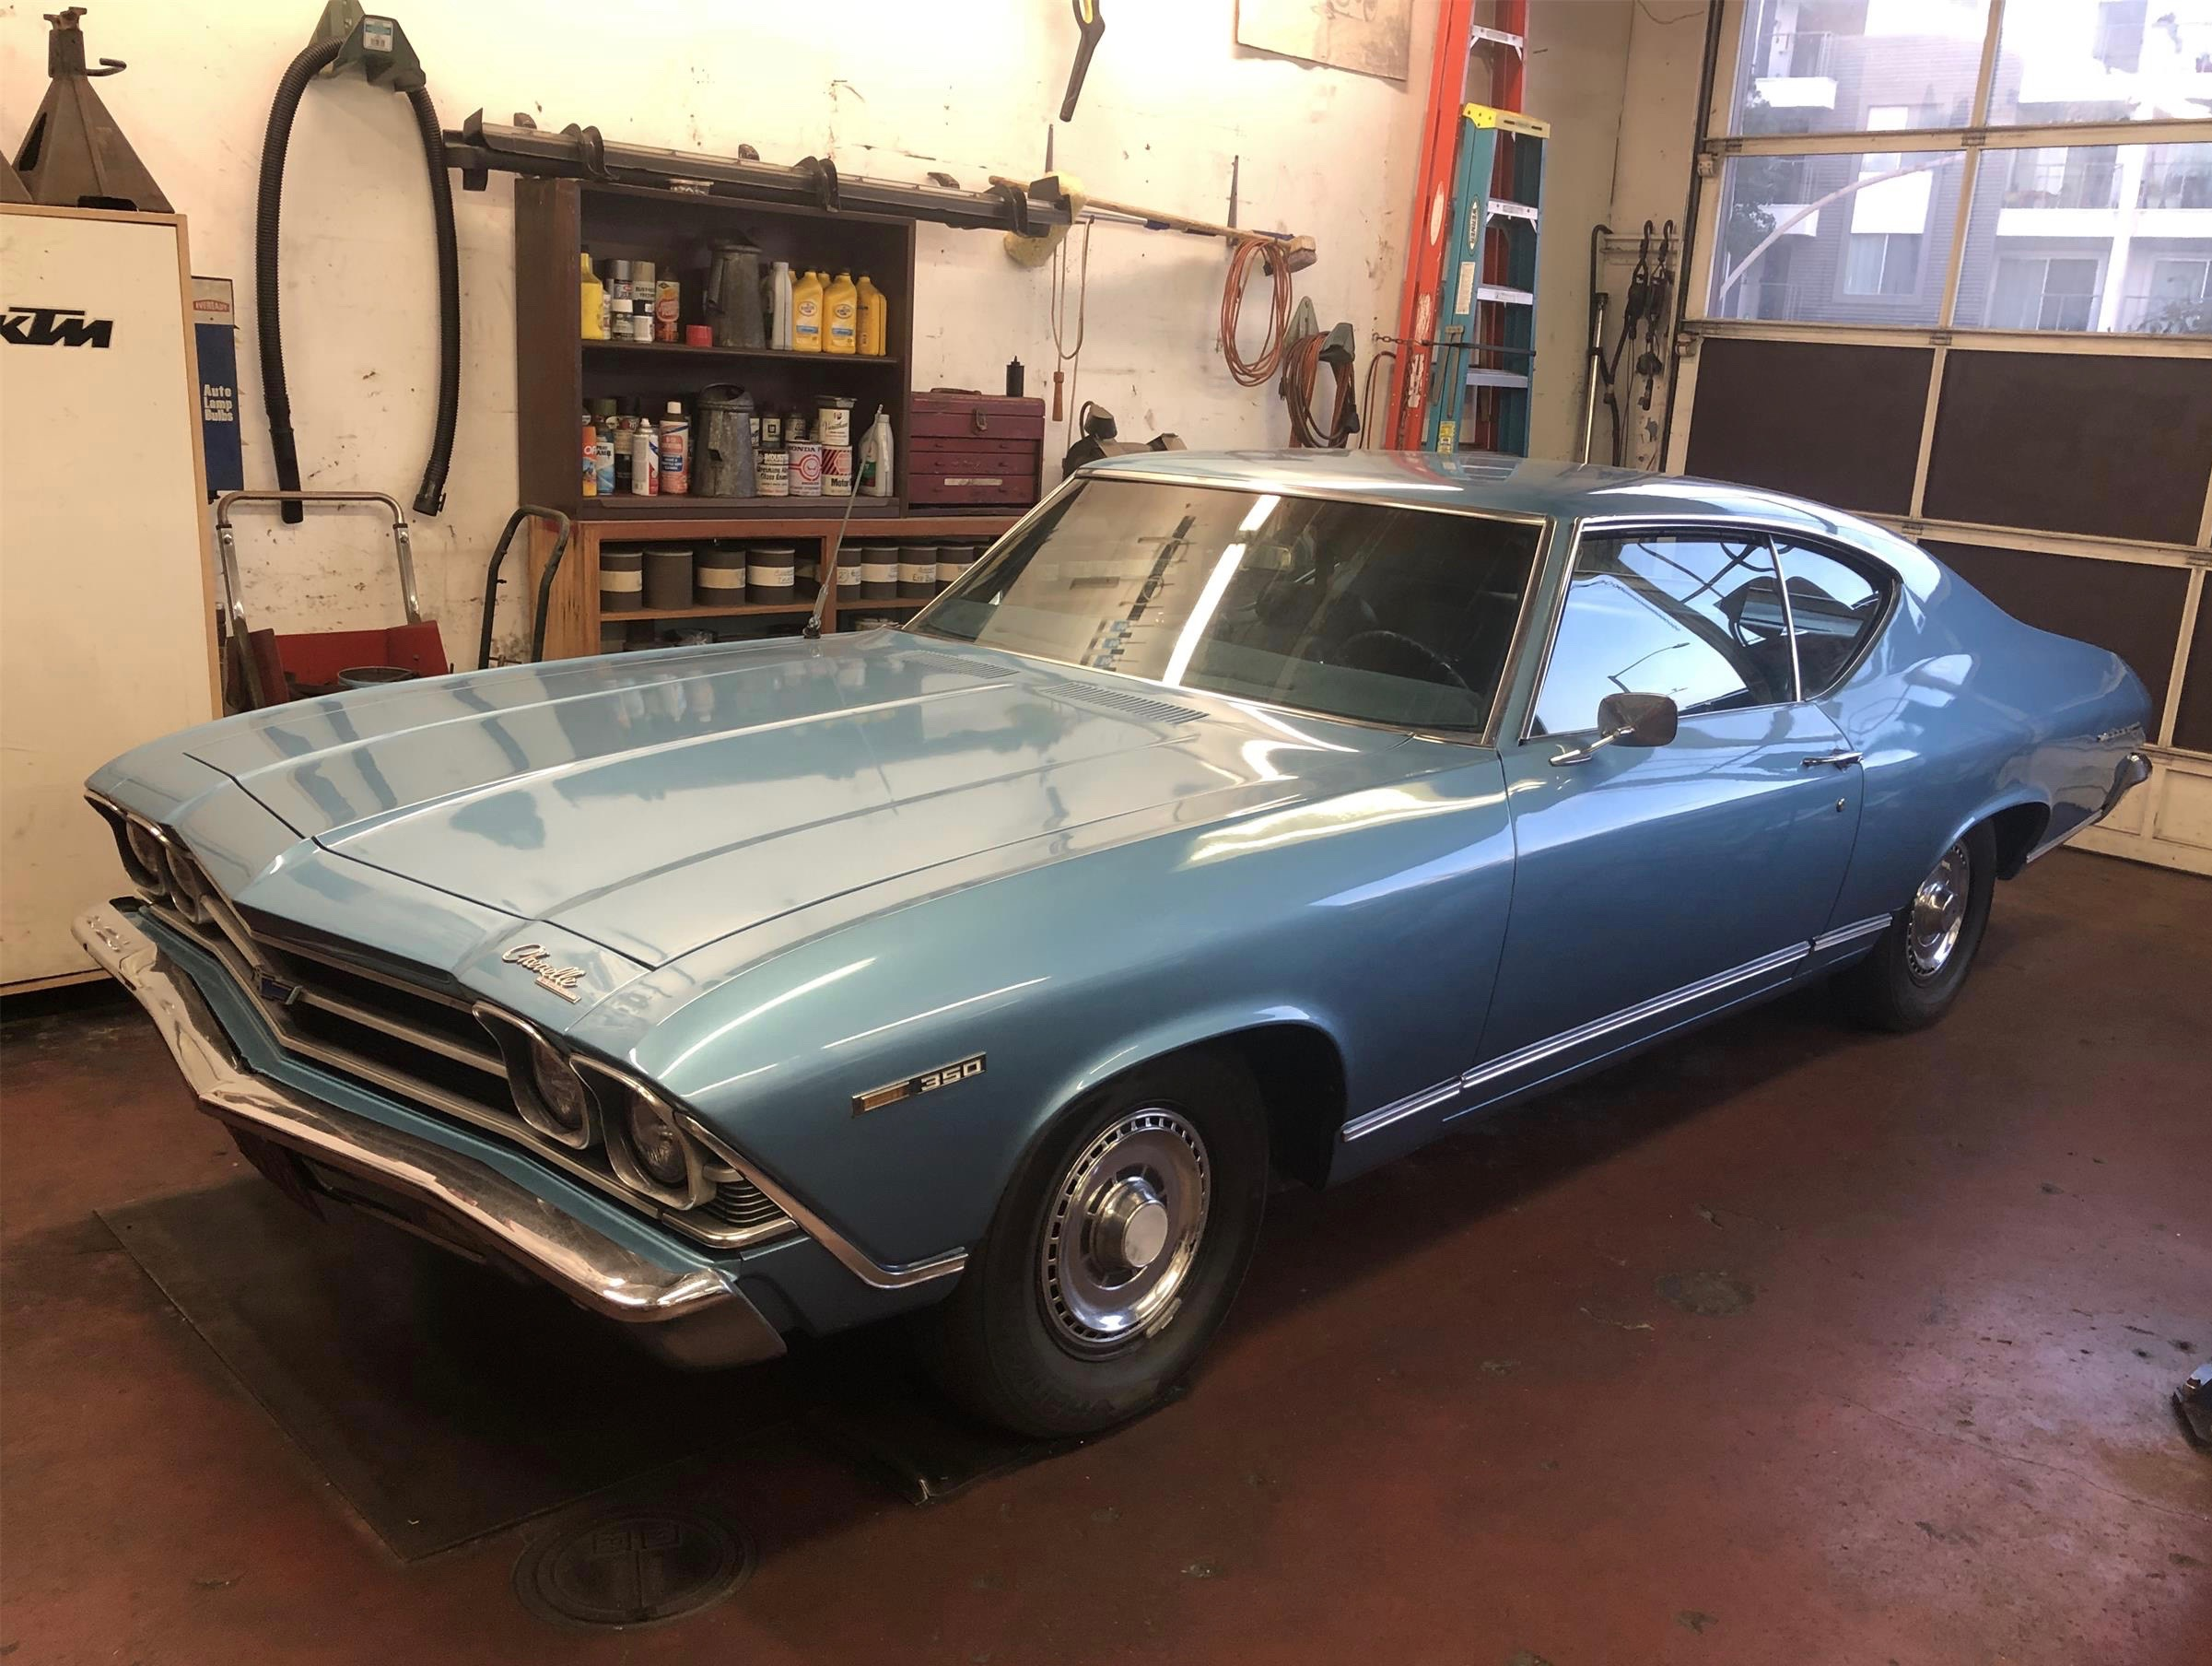 This 'little old lady' left '69 Chevelle Malibu to its caretaker